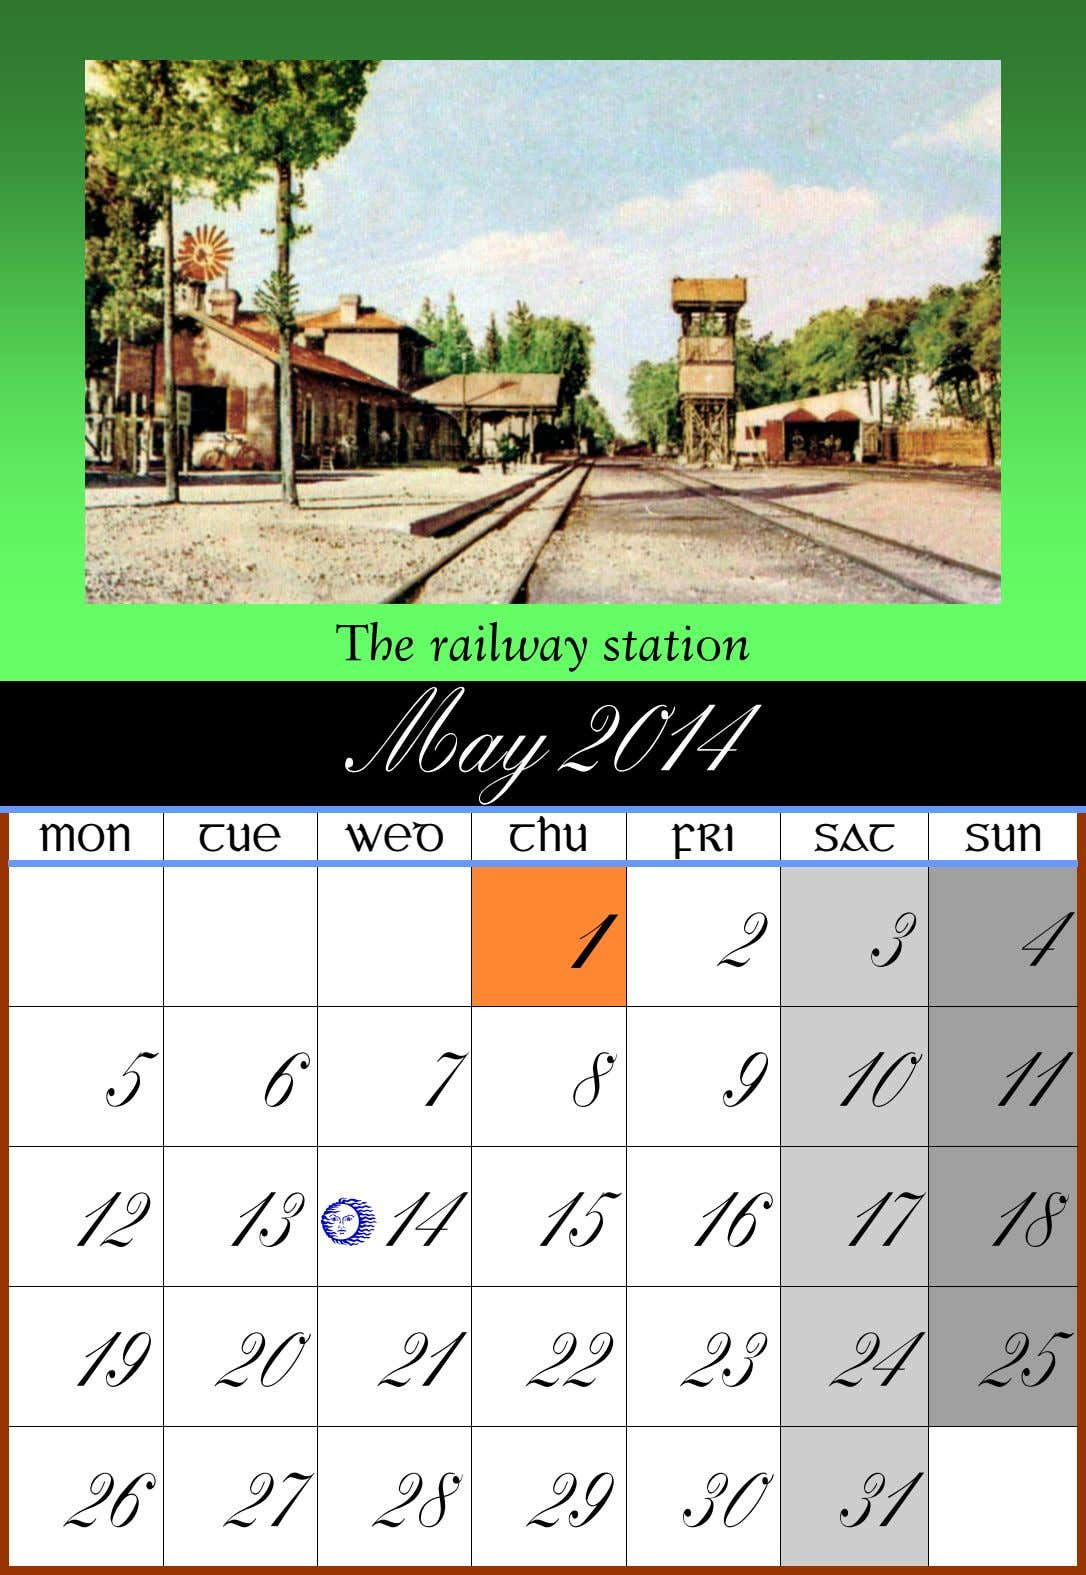 The railway station May 2014 MON TUE WED THU FRI SAT SUN 1 2 3